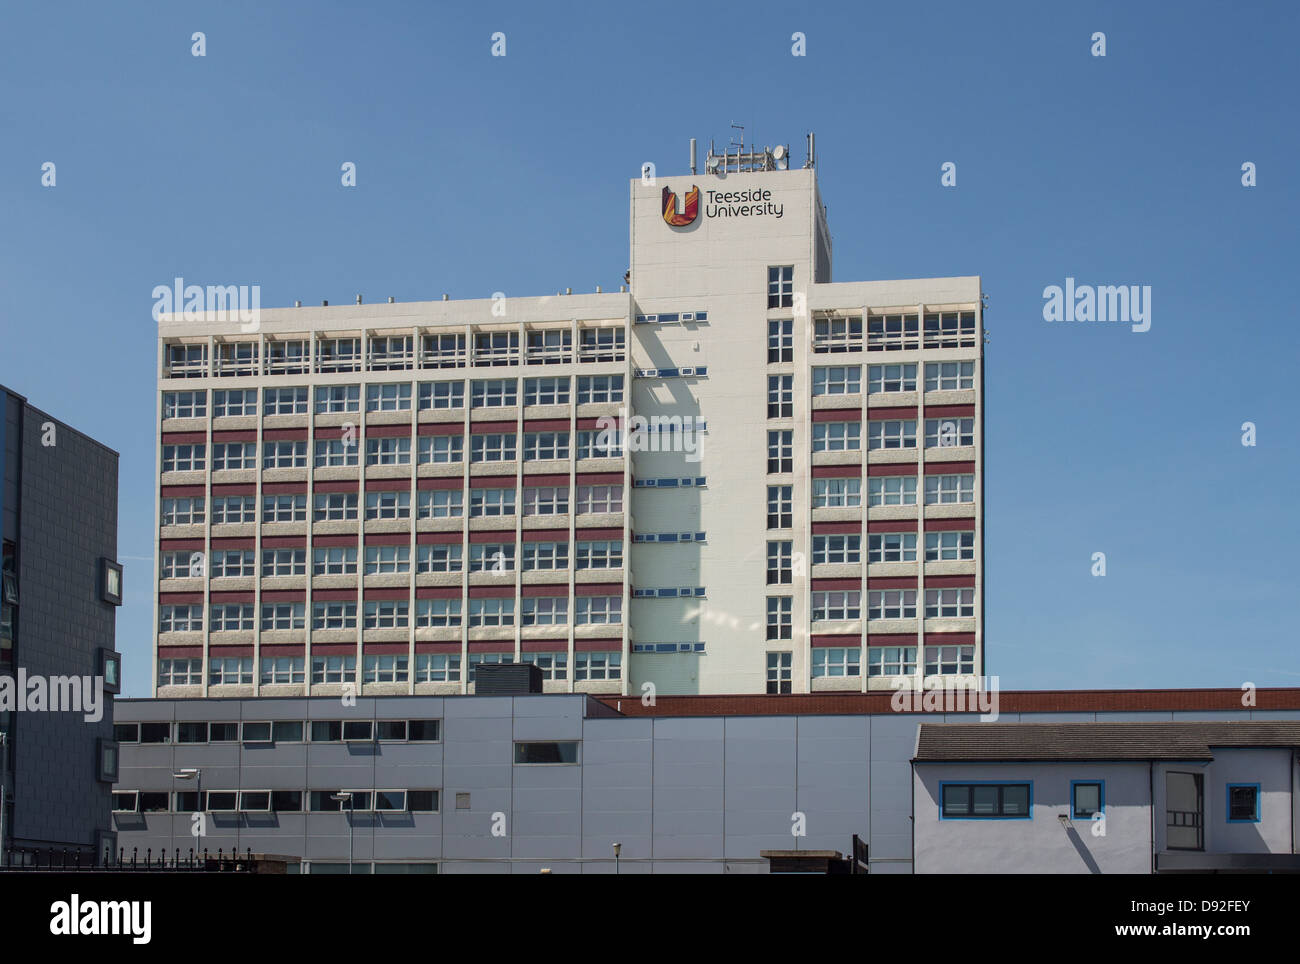 Teeside University Middlesbrougn UK Stock Photo